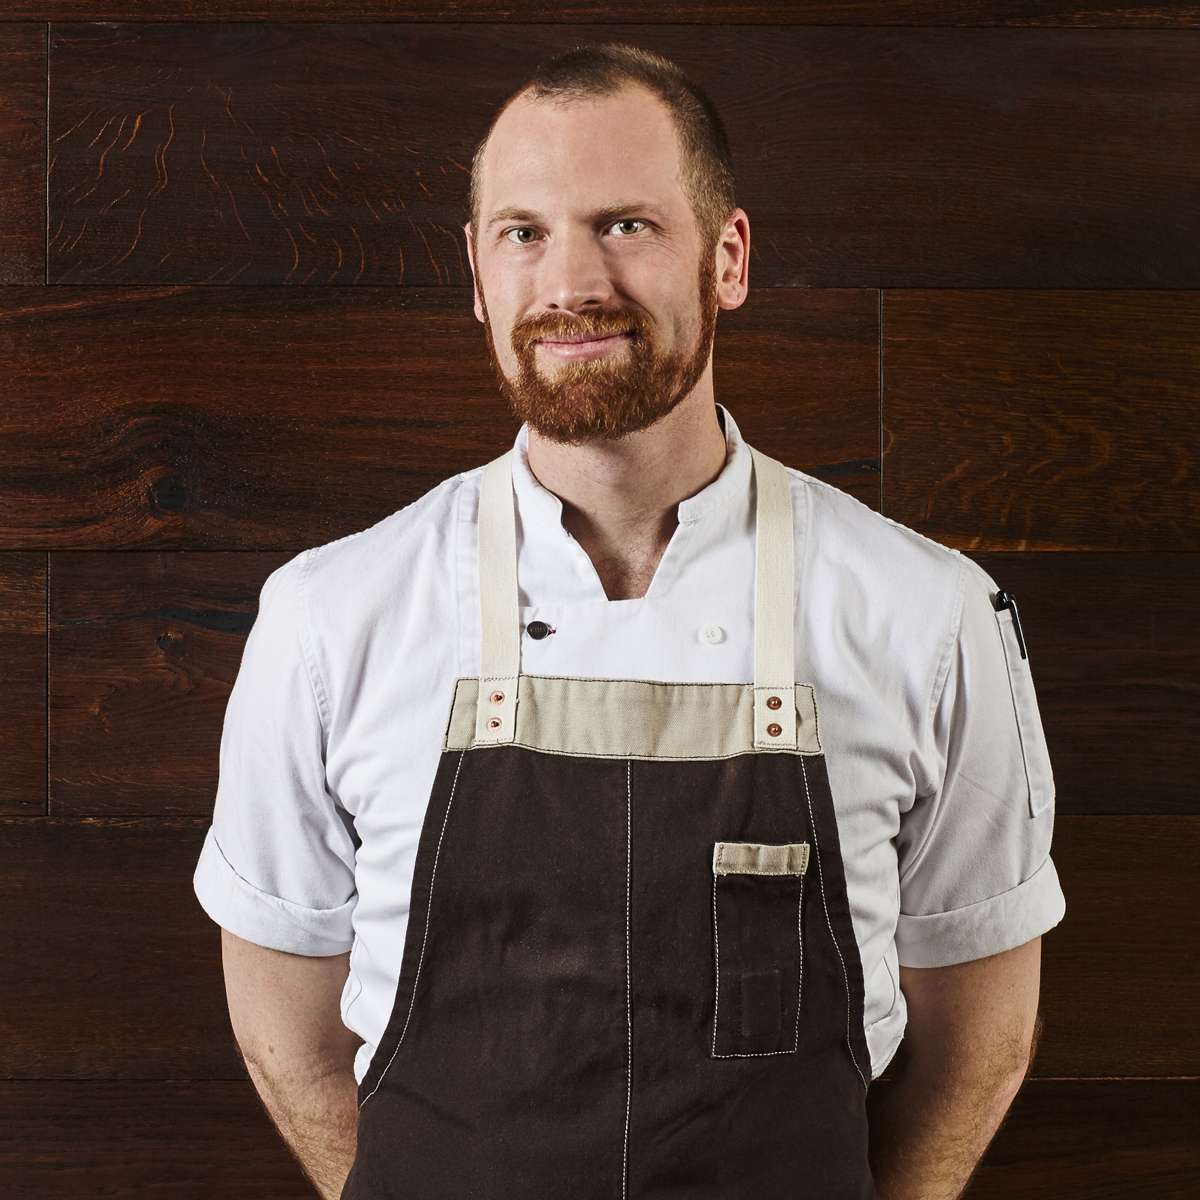 Kevin Fink of Austin's Emmer & Rye is a 2016 F&W Best New Chef